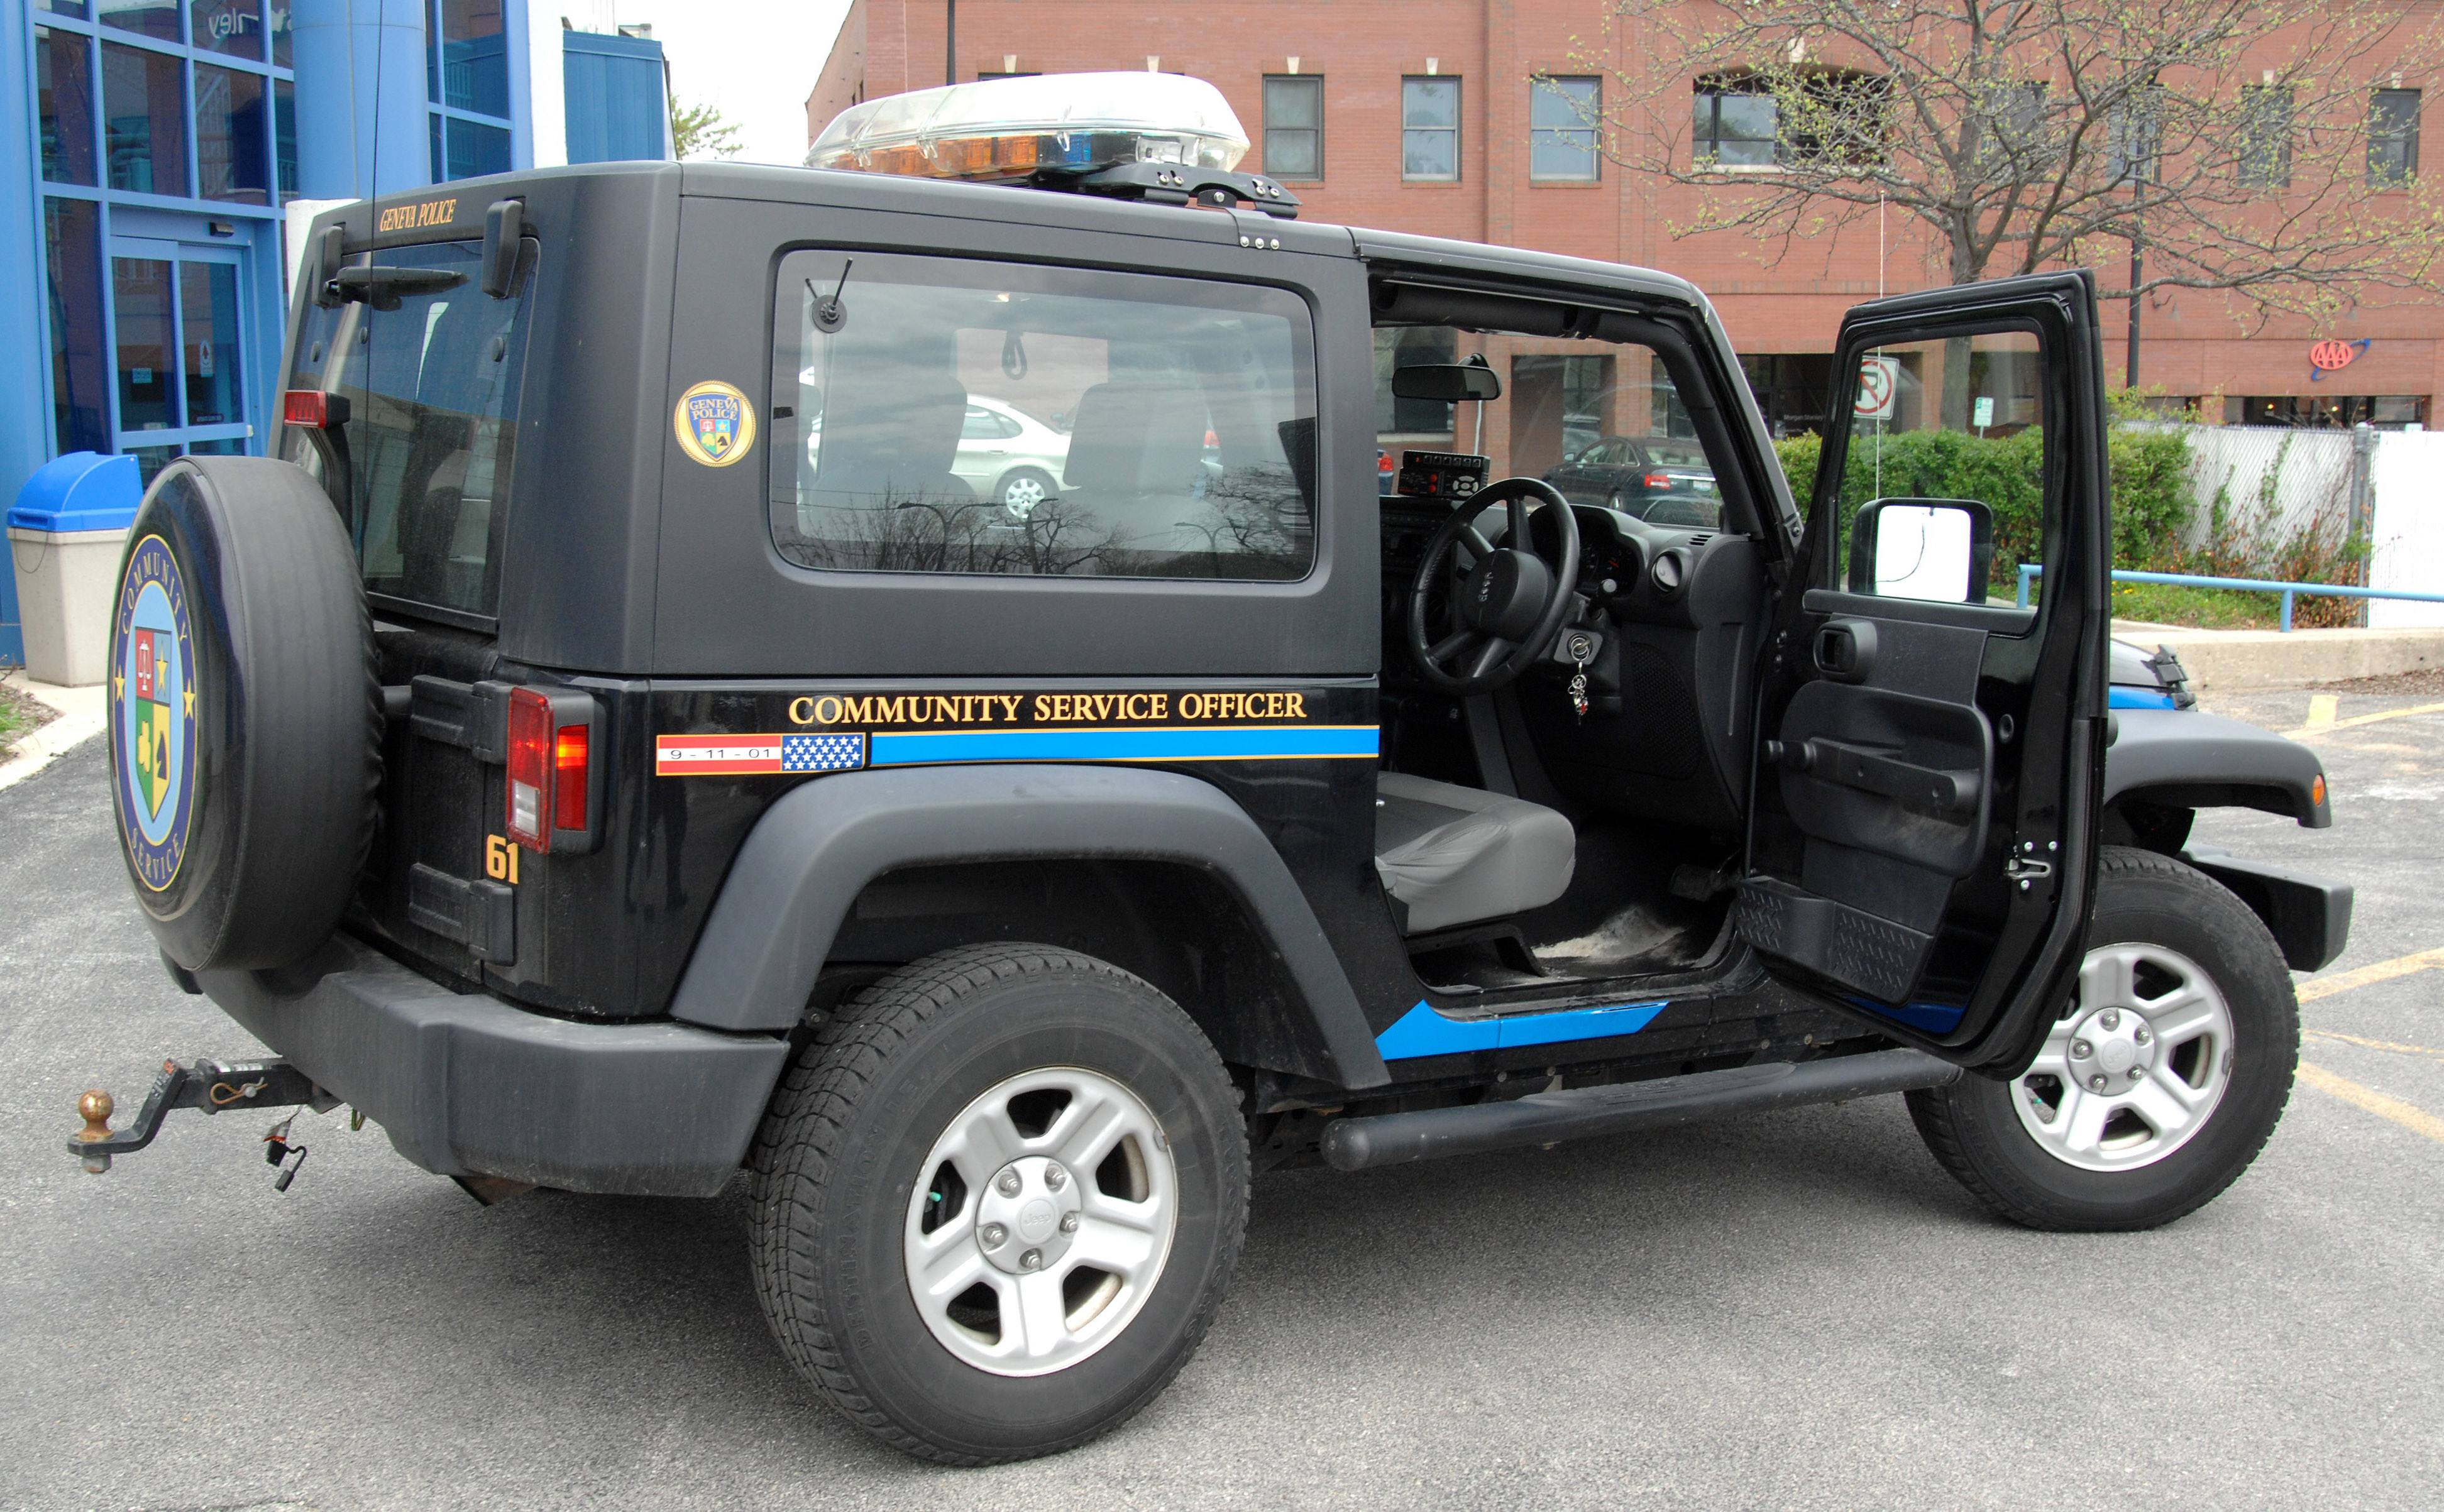 The Geneva Police Department's new Jeep has its steering wheel on the right side.